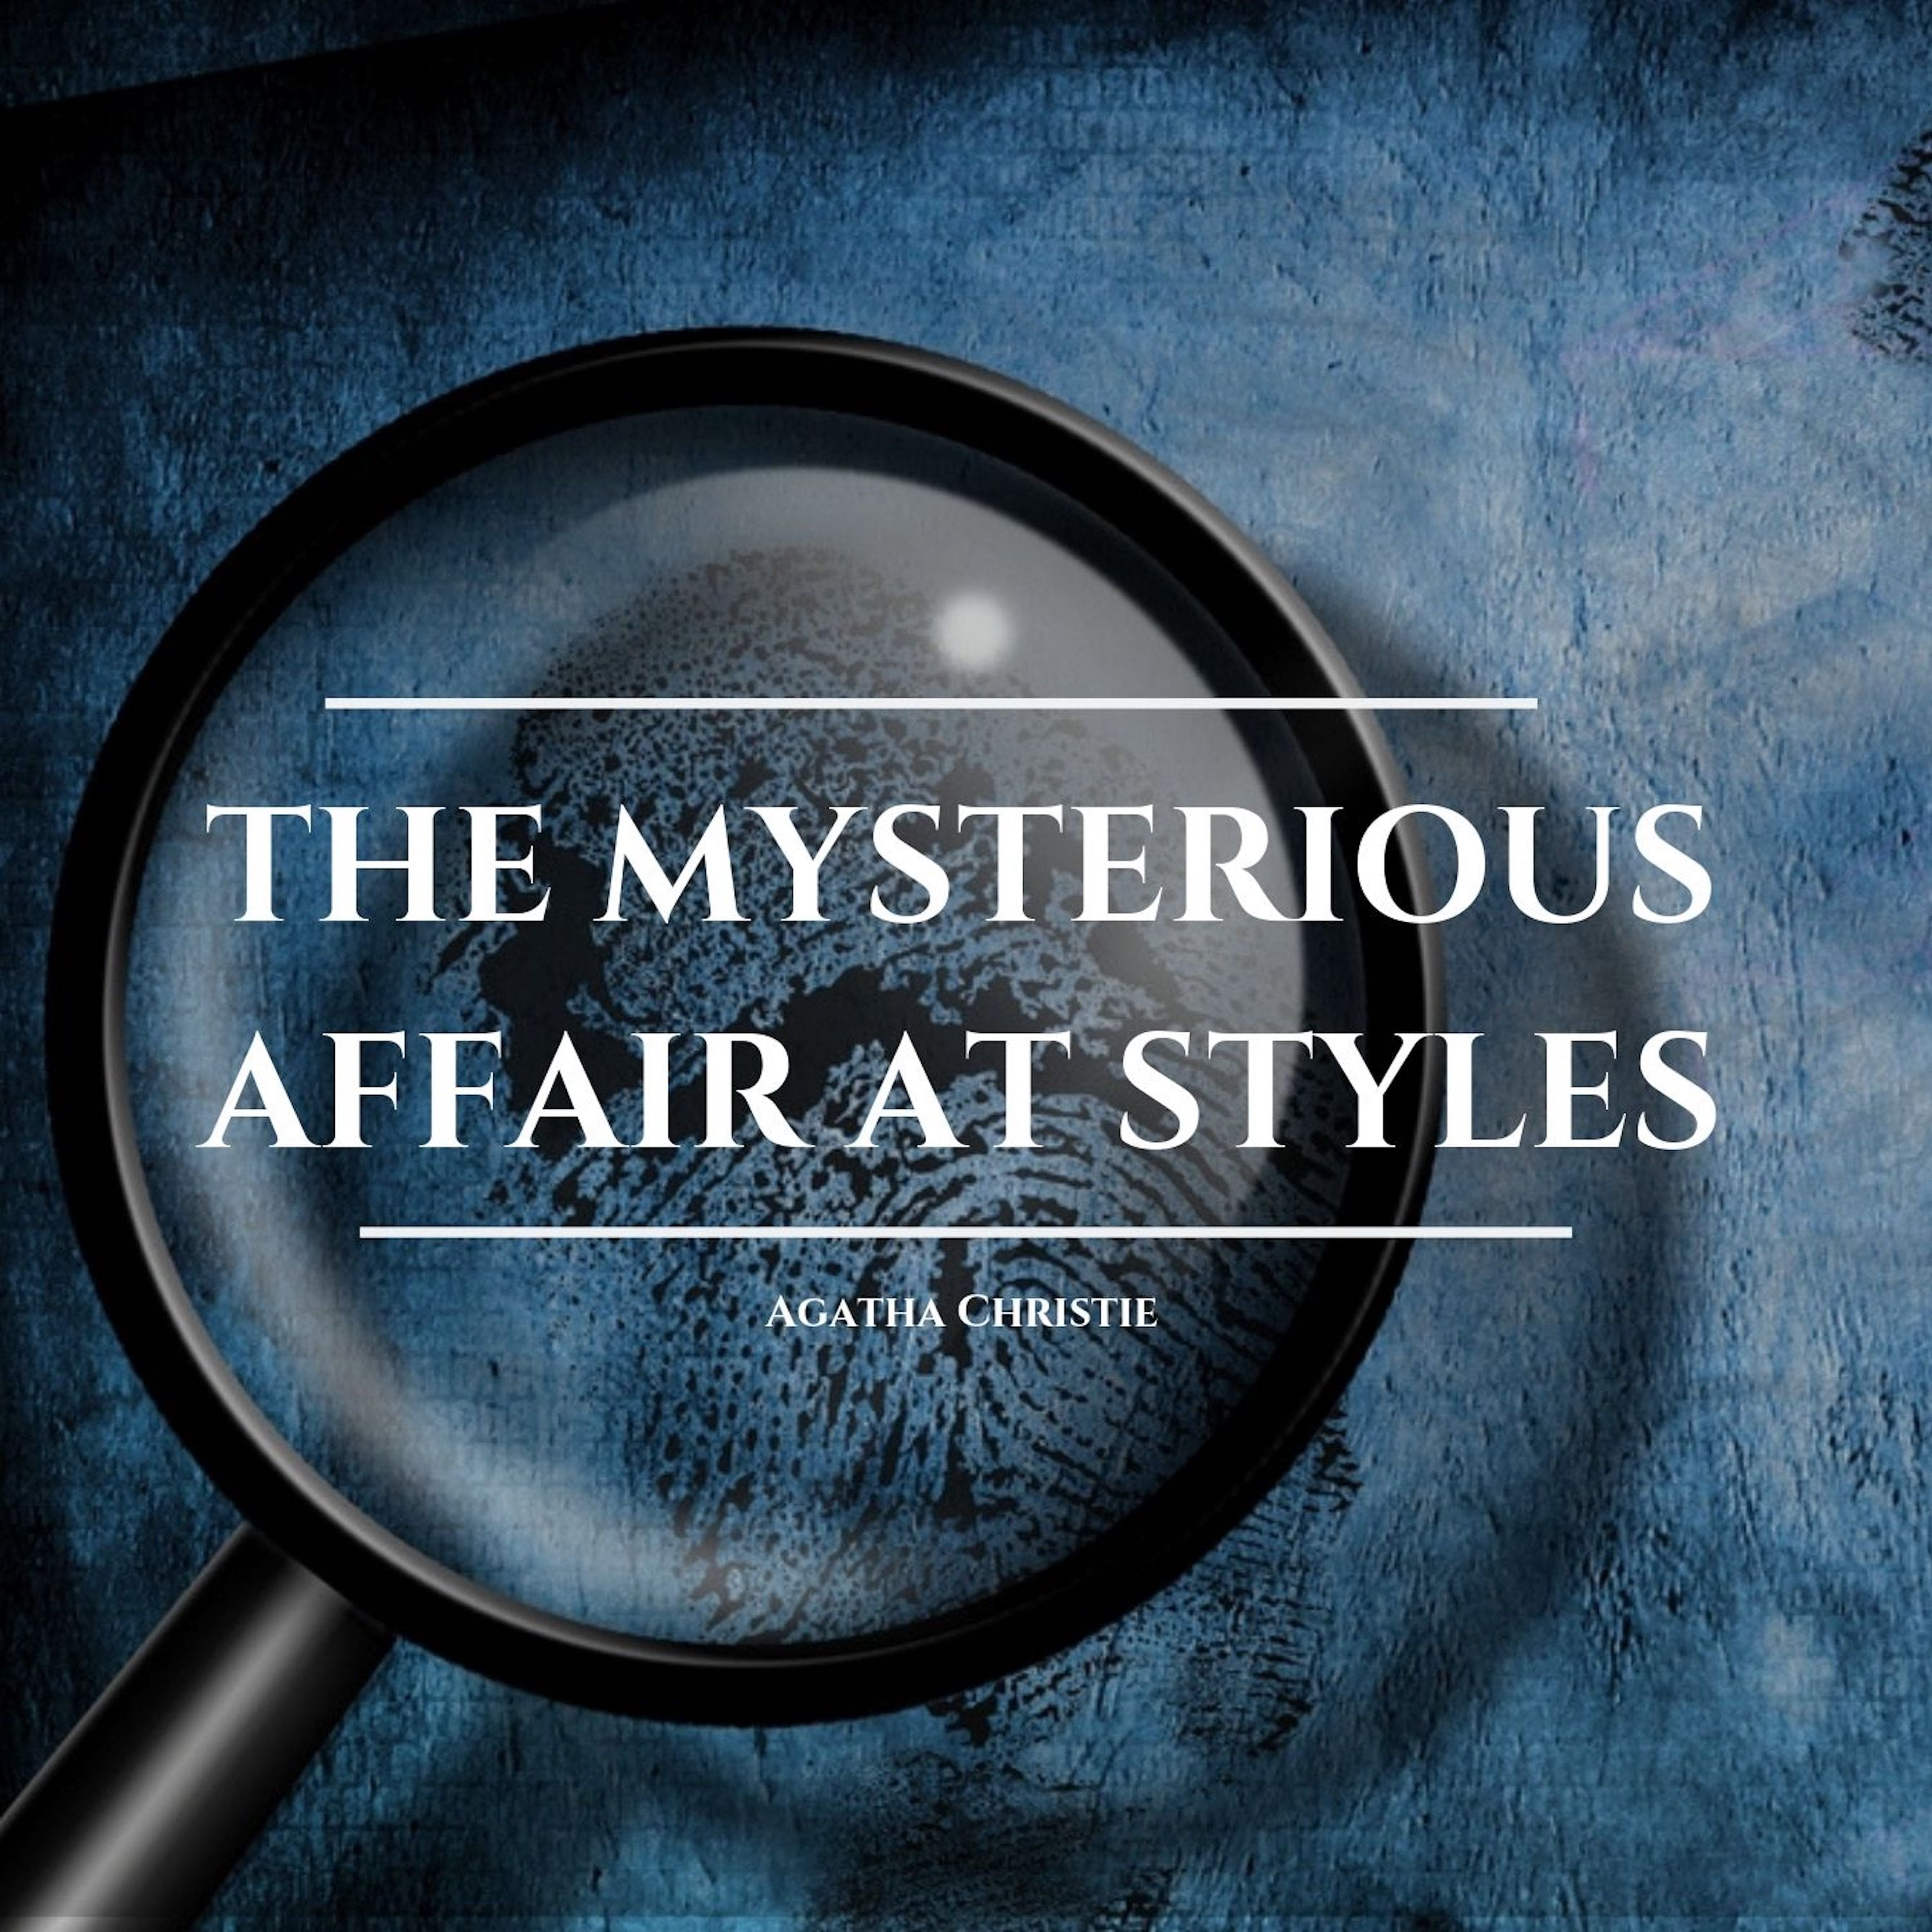 The Mysterious Affair at Styles Audiobook Unabridged (Audible). $0.86